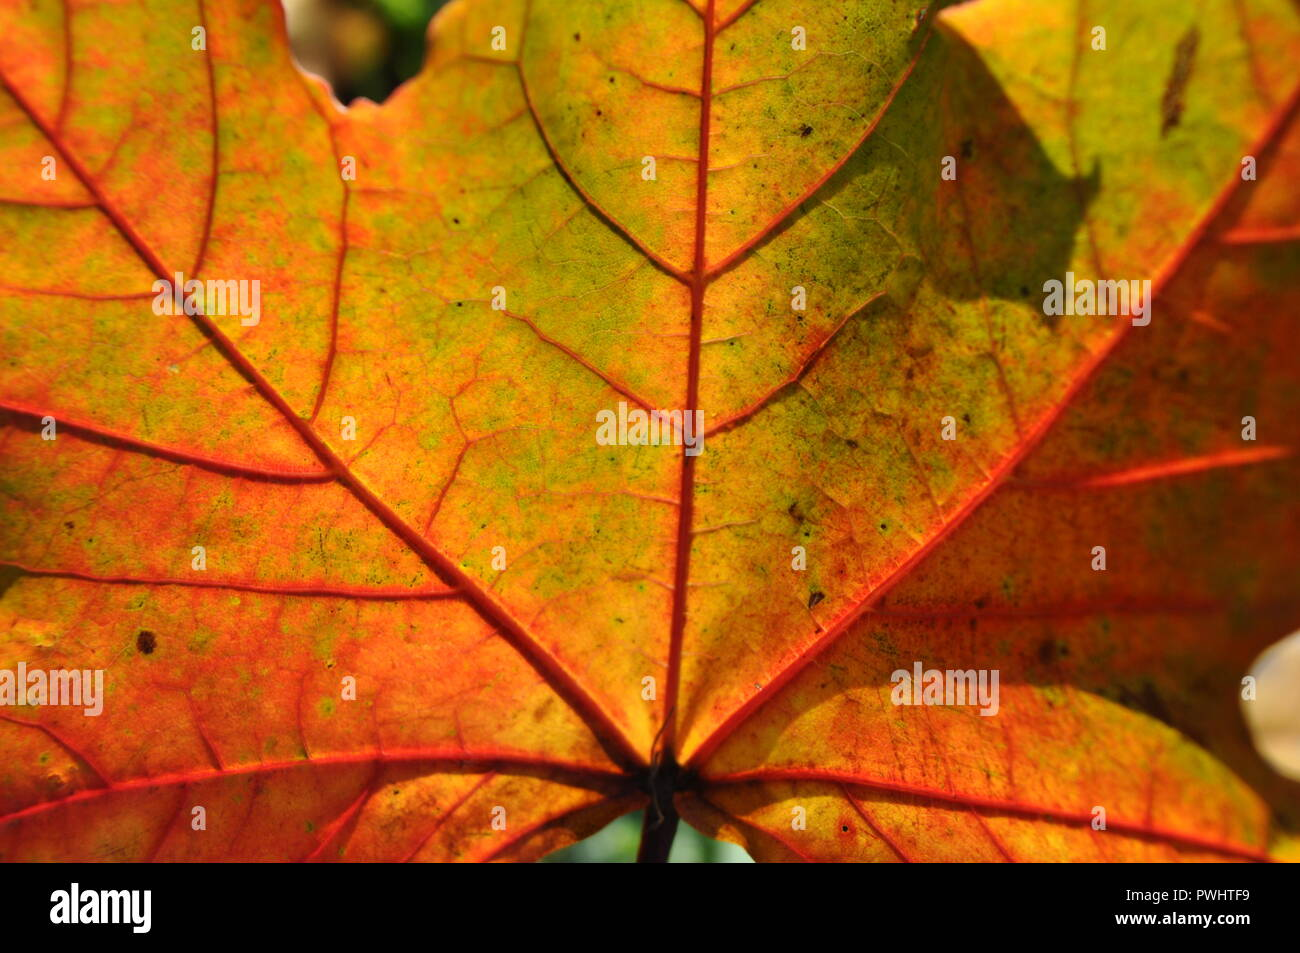 Close Up Of Autumn Leaves Sycamore Maple In Garden Rich Colors Detail Of Veins Sunny Day Stock Photo Alamy